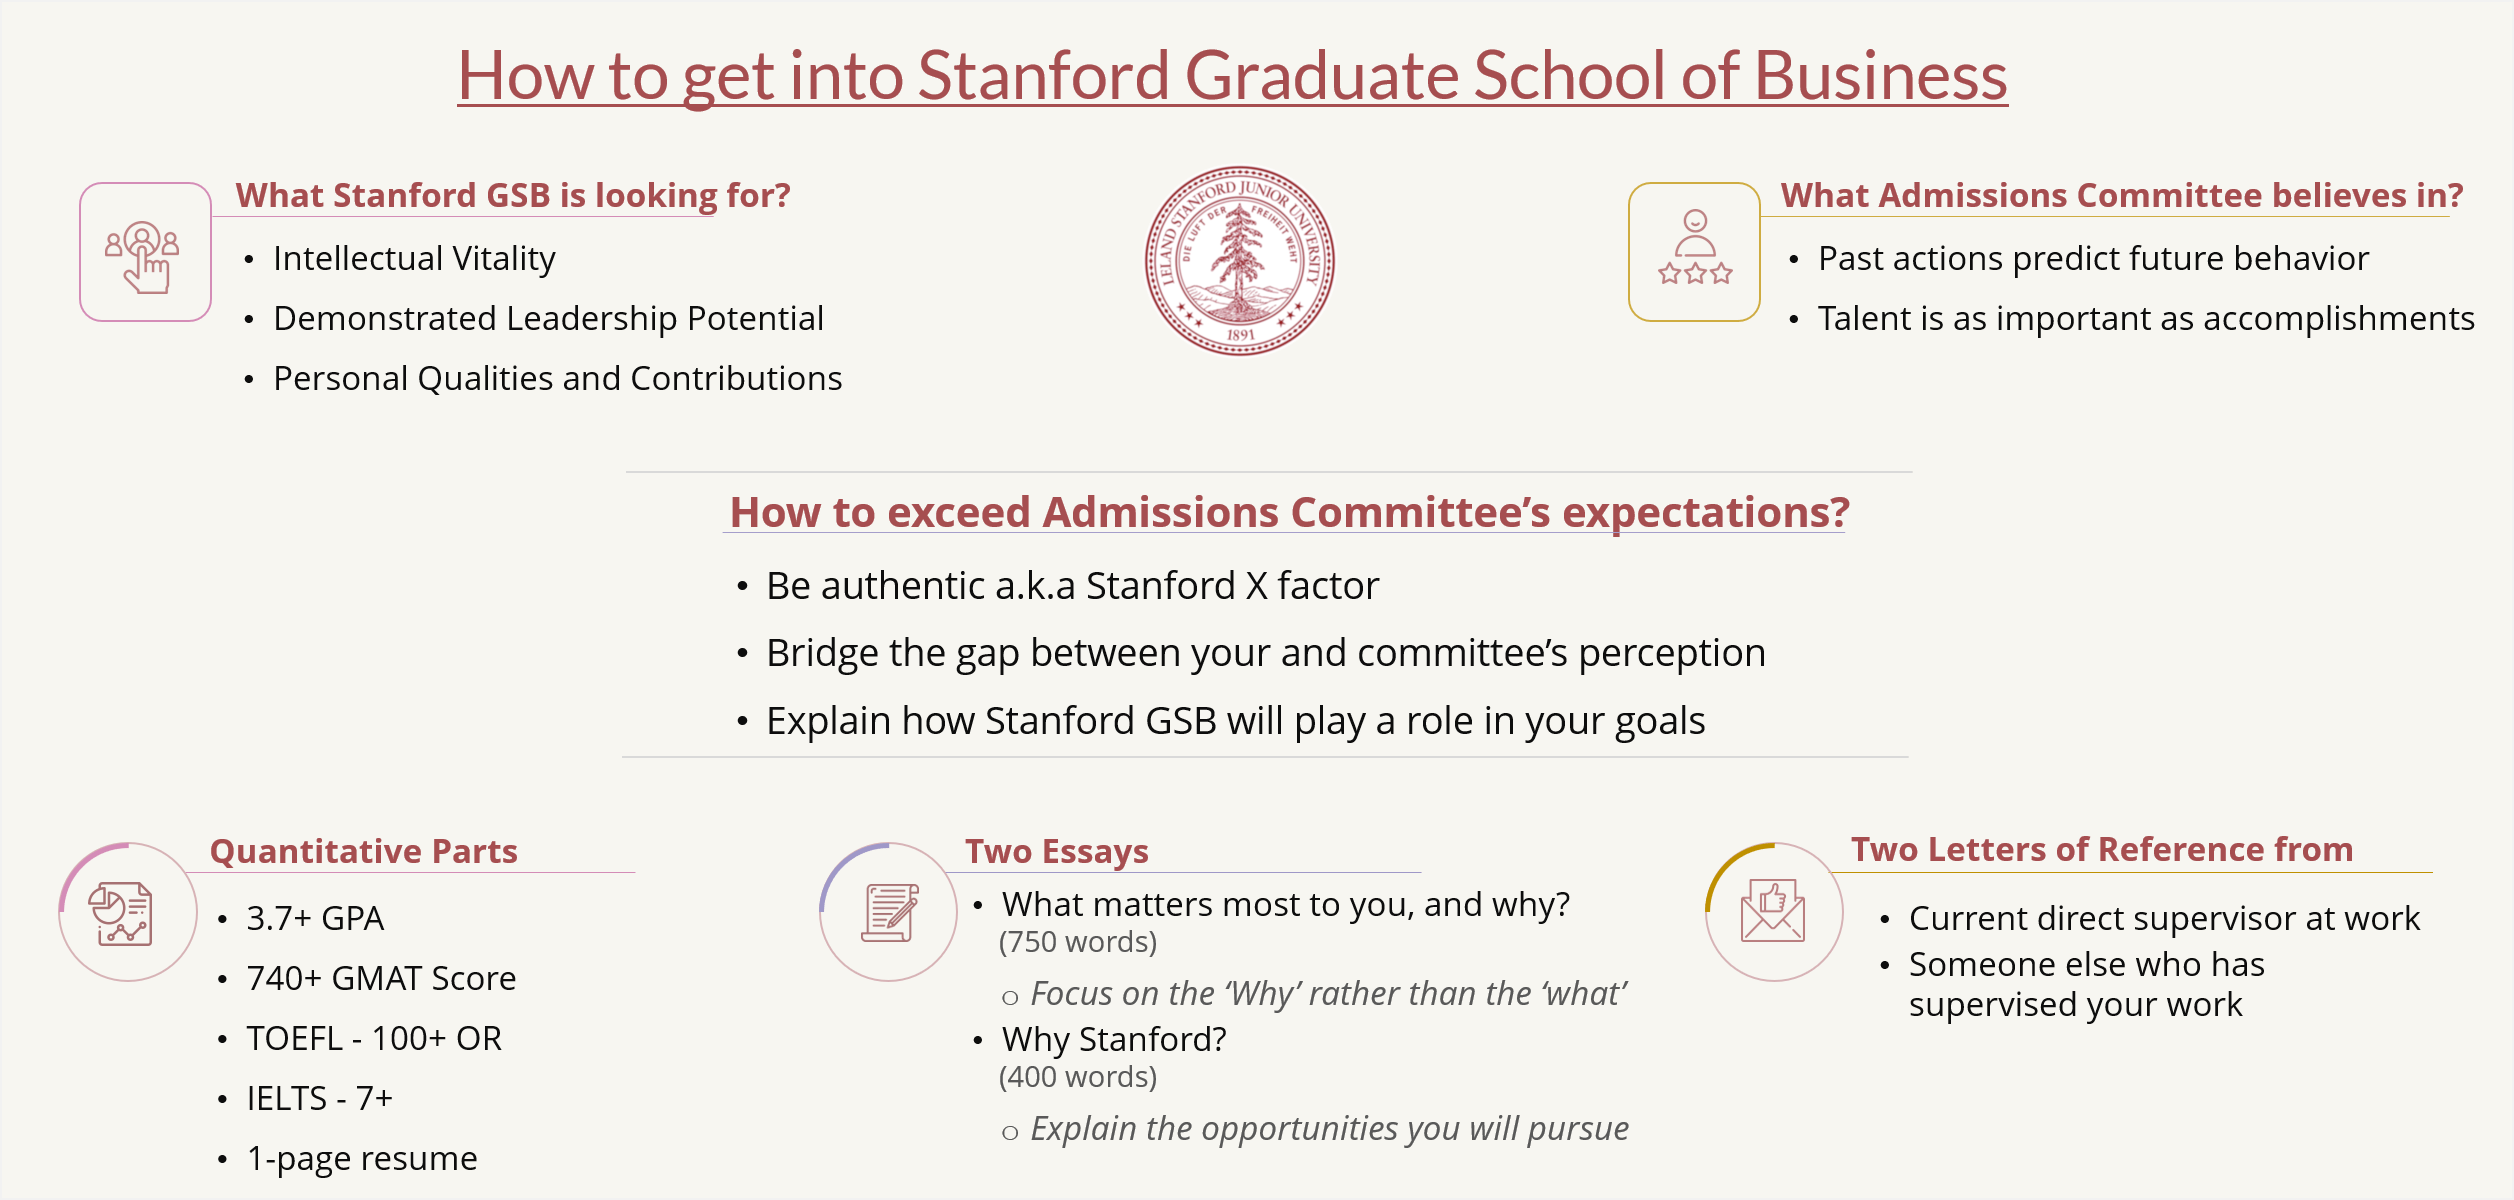 004 How To Get Into Stanford Gsb Mba Programfit25142c1200ssl1 Essay Phenomenal 2019 Analysis Tips Full